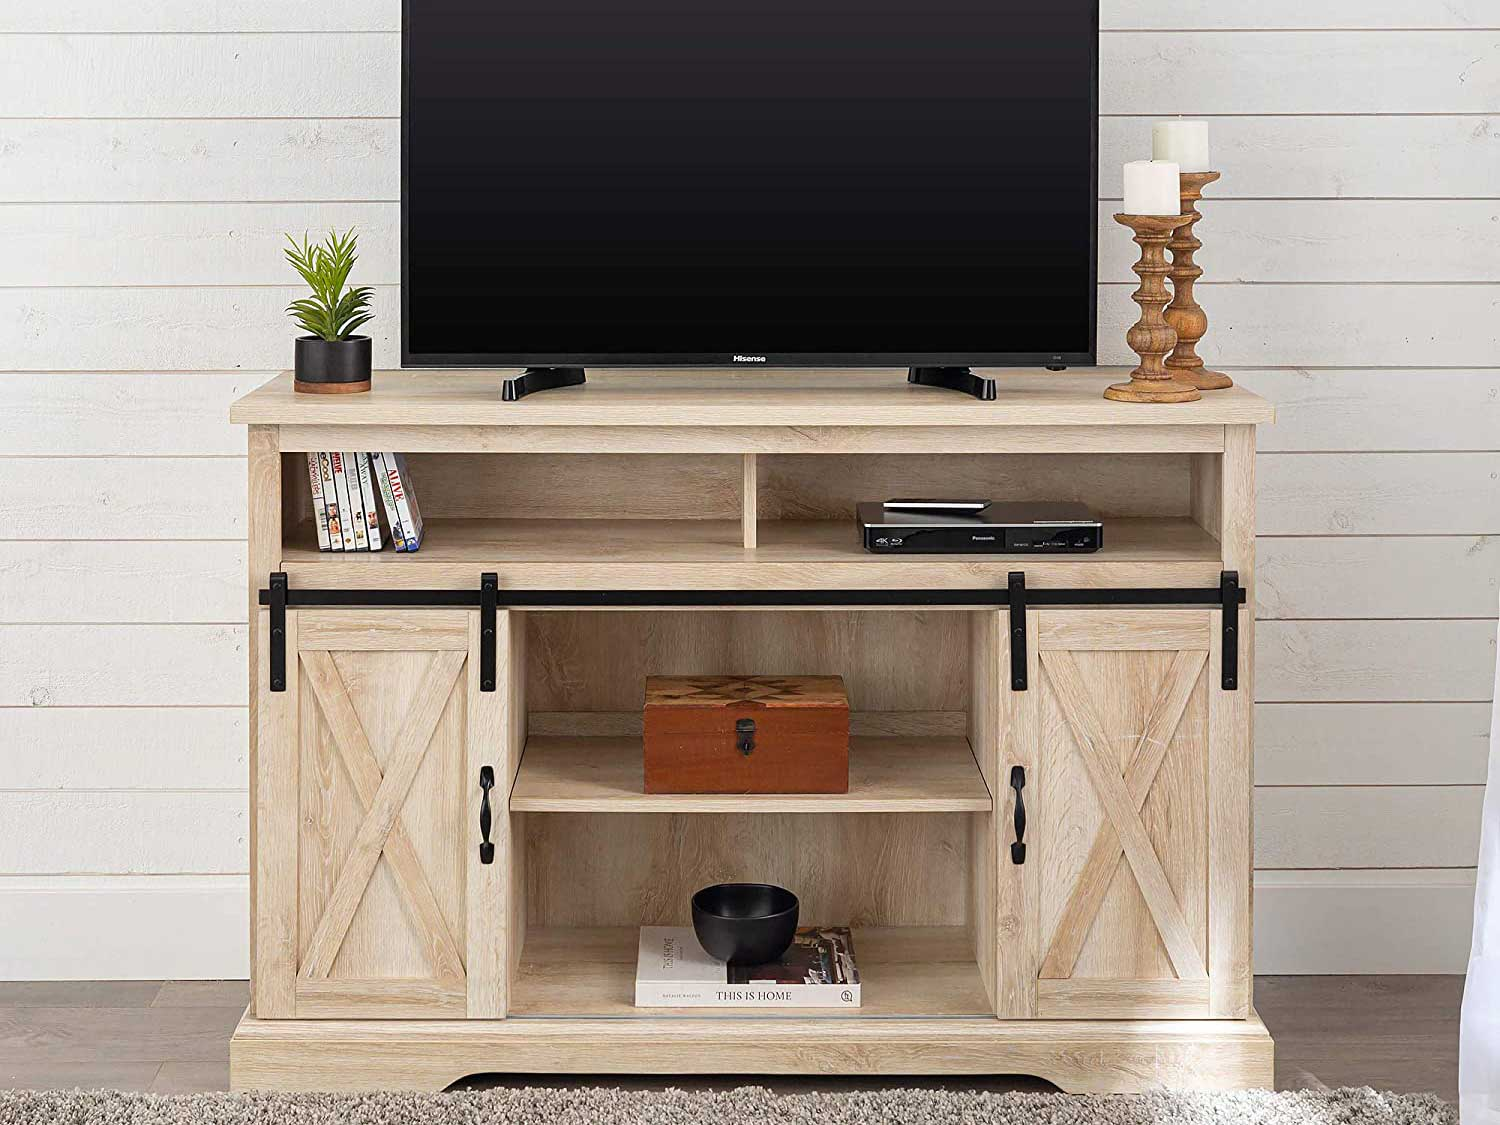 Walker Edison Furniture Company Modern Farmhouse Sliding Barndoor Wood Tall Universal Stand for TV's up to 58